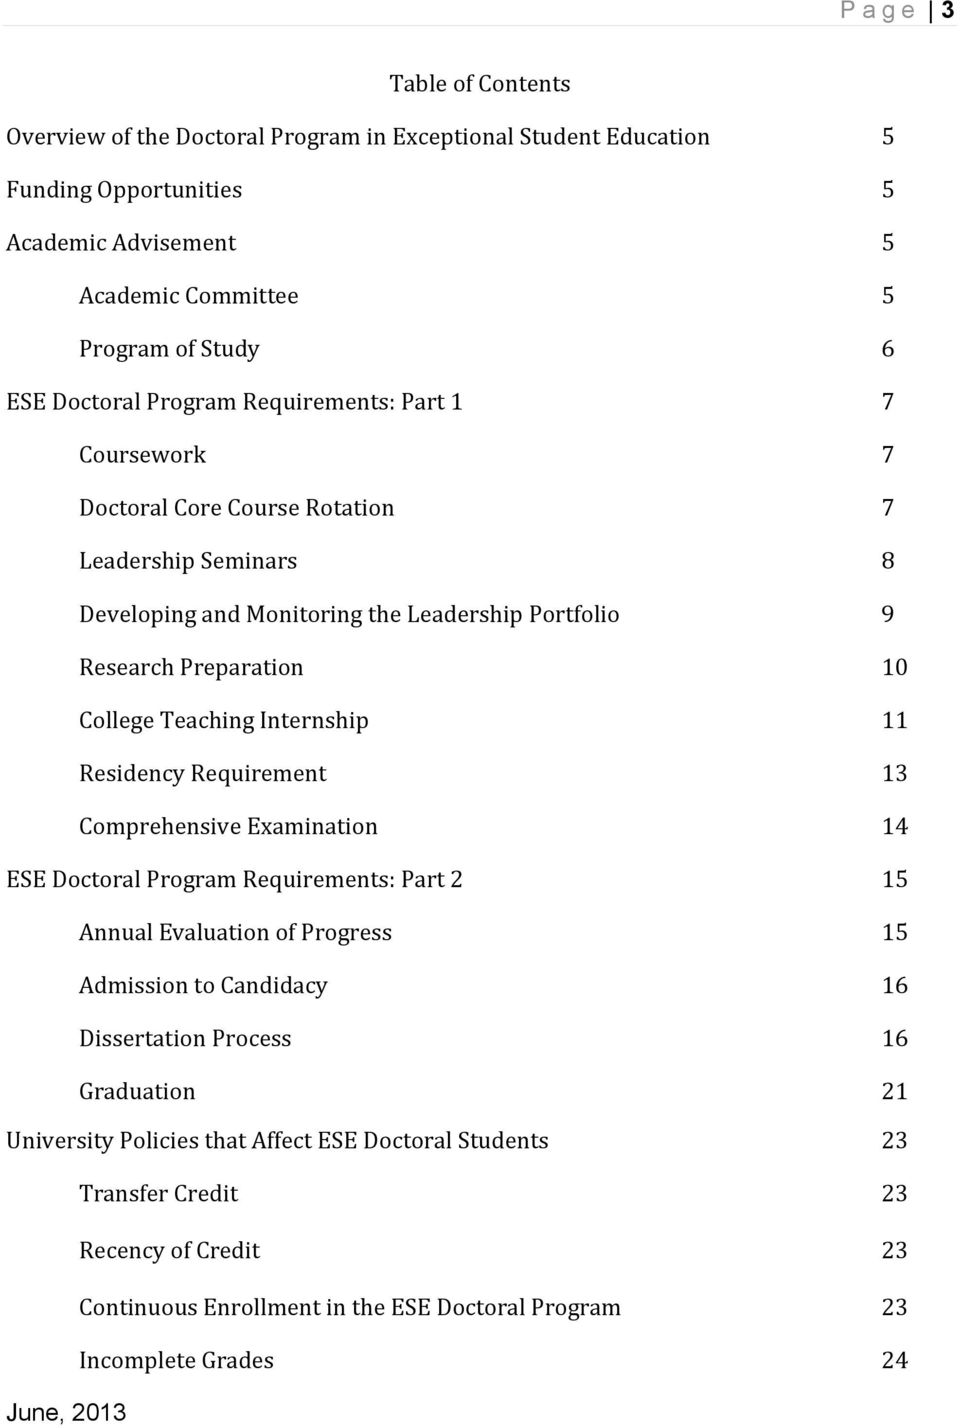 Teaching Internship 11 Residency Requirement 13 Comprehensive Examination 14 ESE Doctoral Program Requirements: Part 2 15 Annual Evaluation of Progress 15 Admission to Candidacy 16